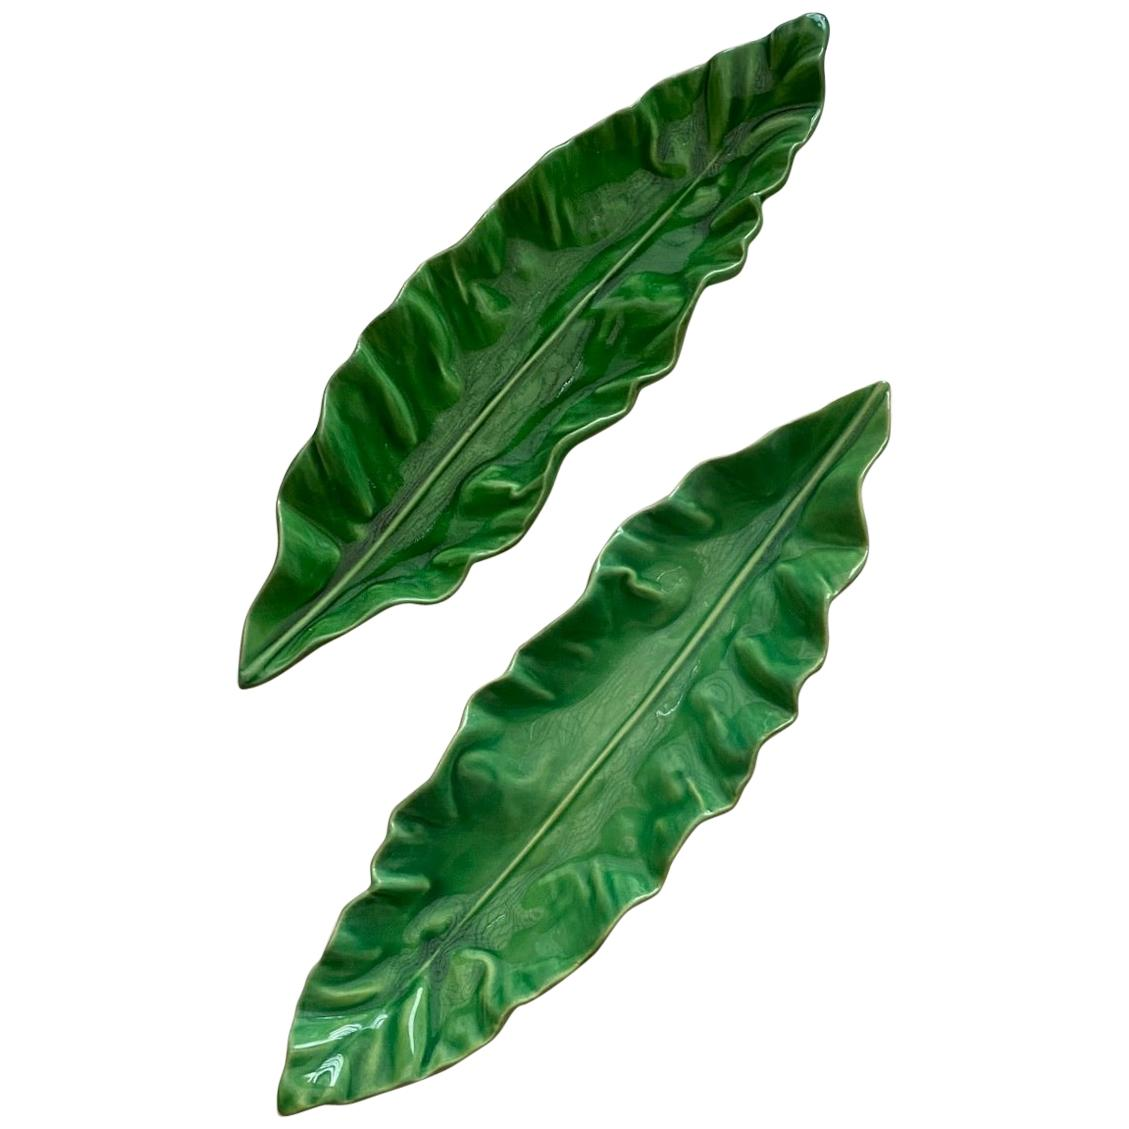 Set of 2 Ceramic Green Leaves Dishes by Pol Chambost 1950s